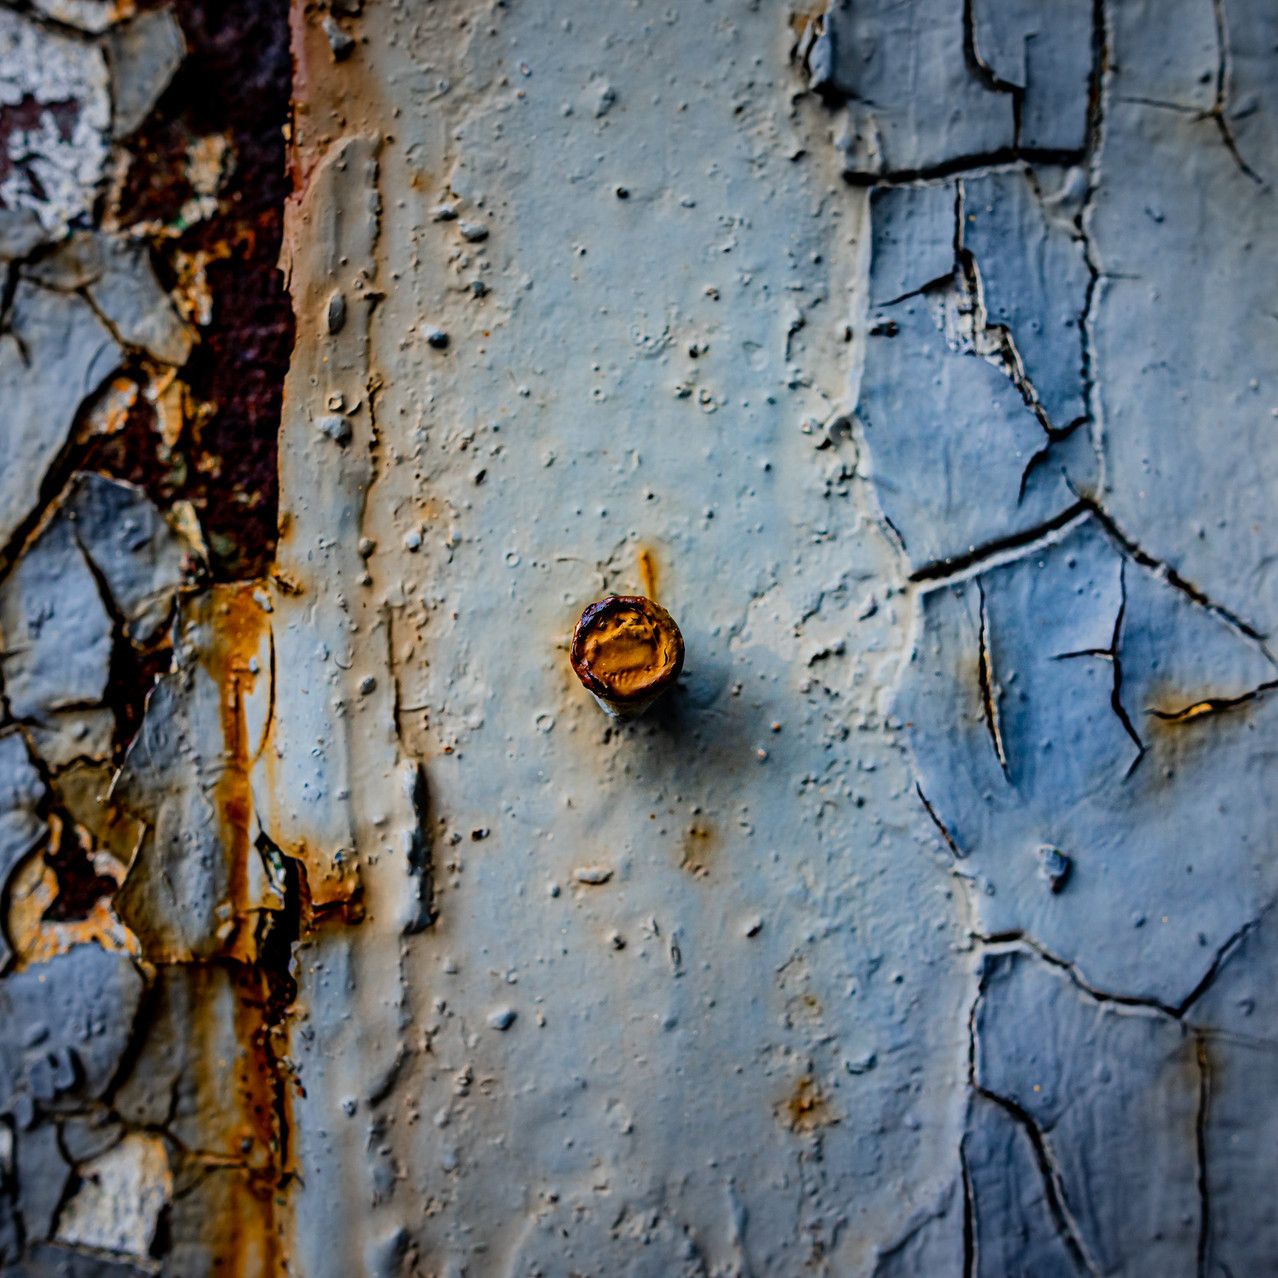 Old nail and peeling cracked paint.